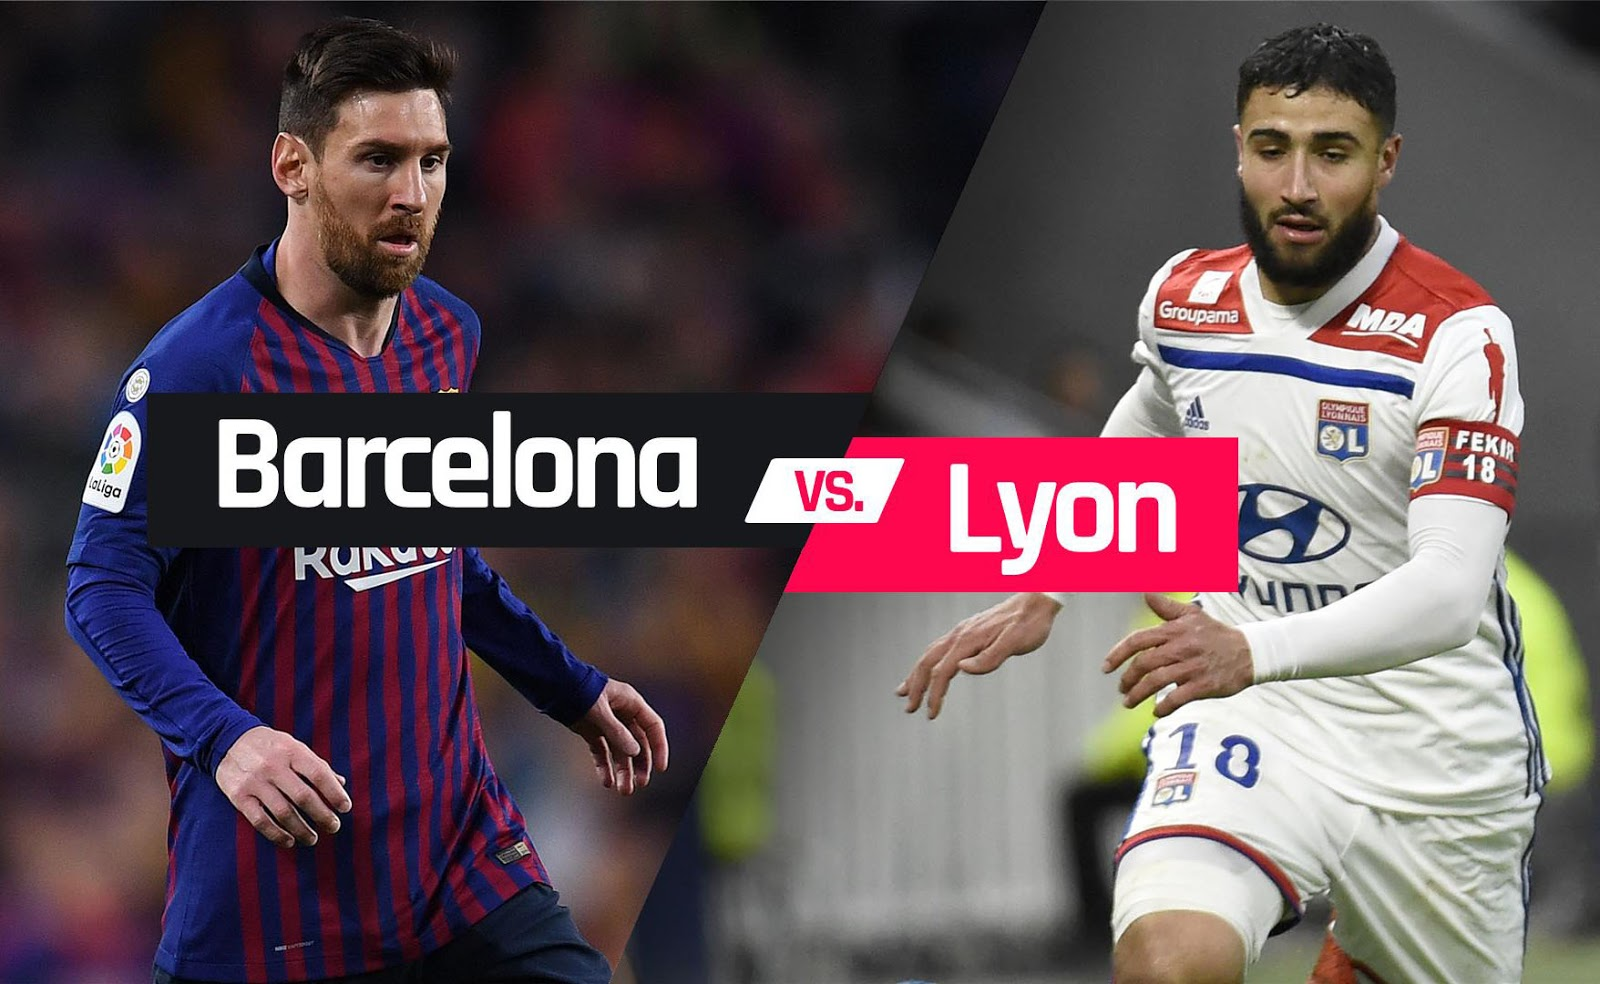 In Top News 24 Breaking News U S And World News Itn24 Barcelona Vs Lyon Champions League Live Preview